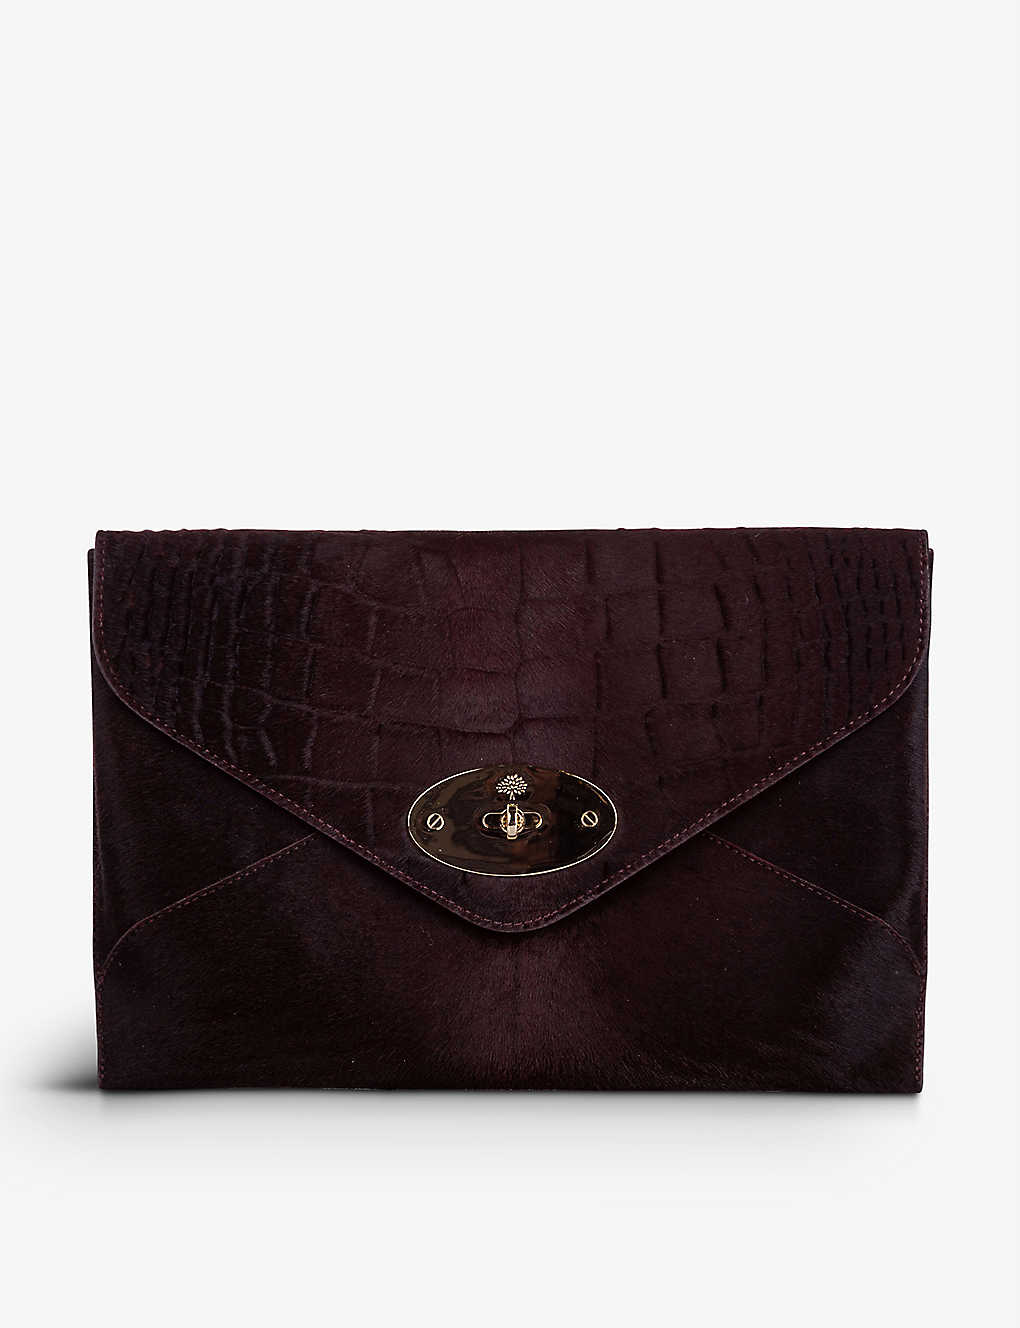 RESELLFRIDGES: Pre-loved Mulberry Willow leather clutch